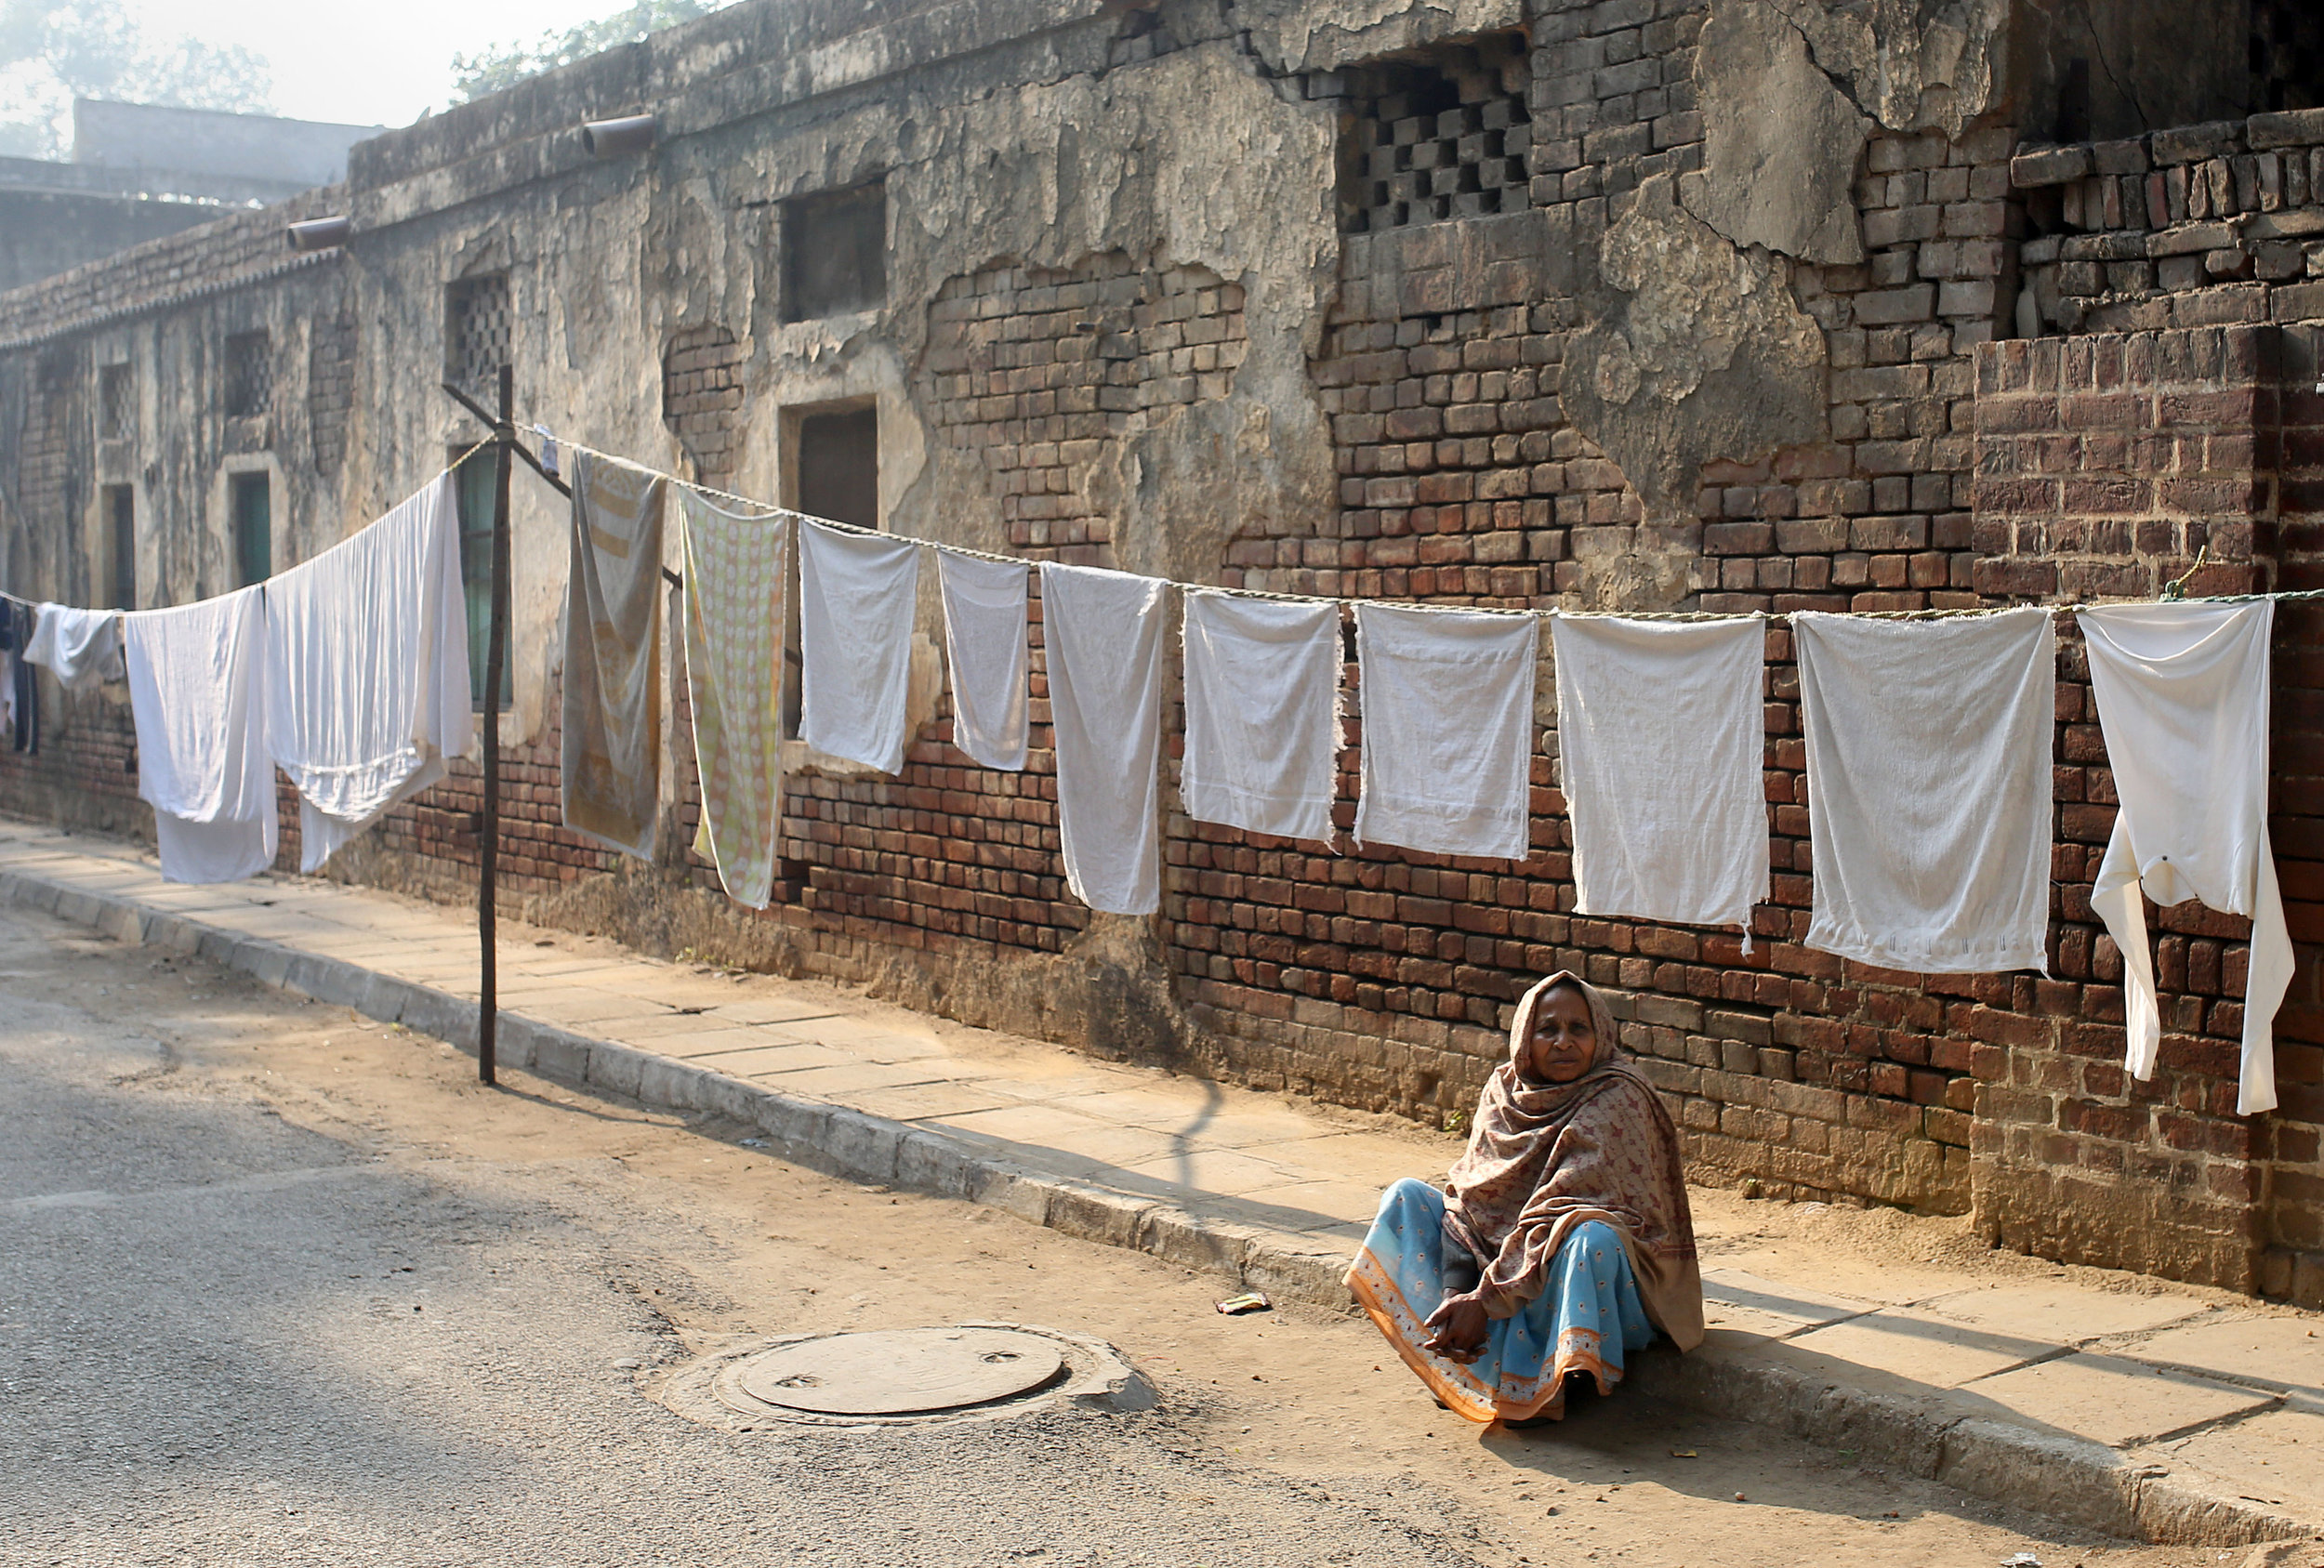 An elderly woman sits among drying washing in the laundry area of New Delhi, India